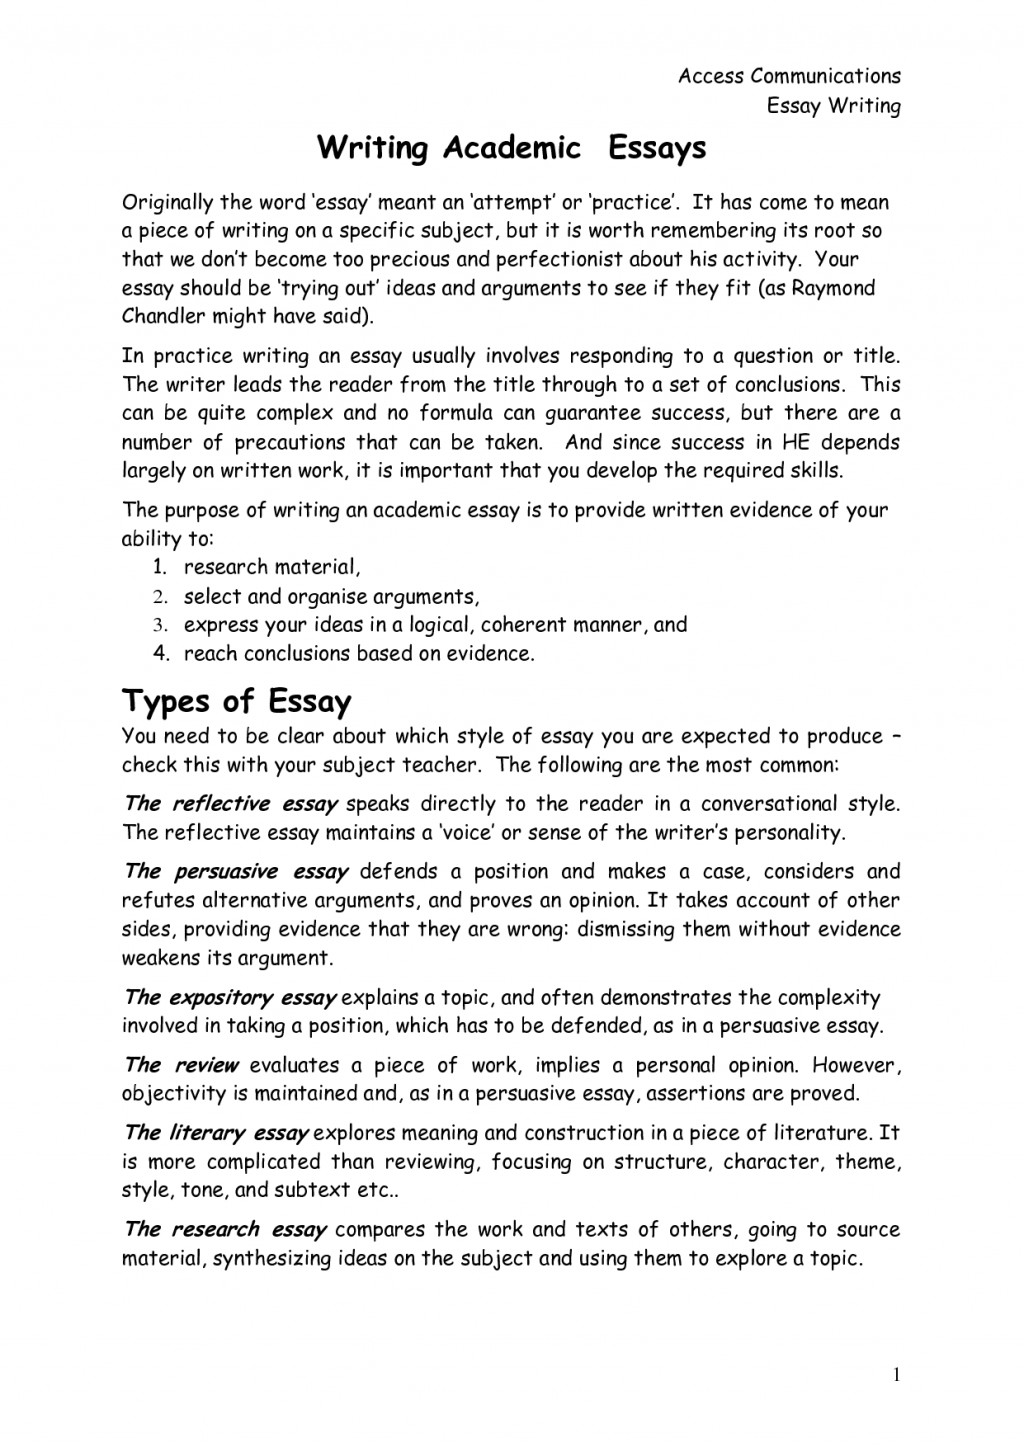 016 Reflective Essay On Academic Writings Beautiful Examples Advanced Higher English Writing Example Pdf About Life Large